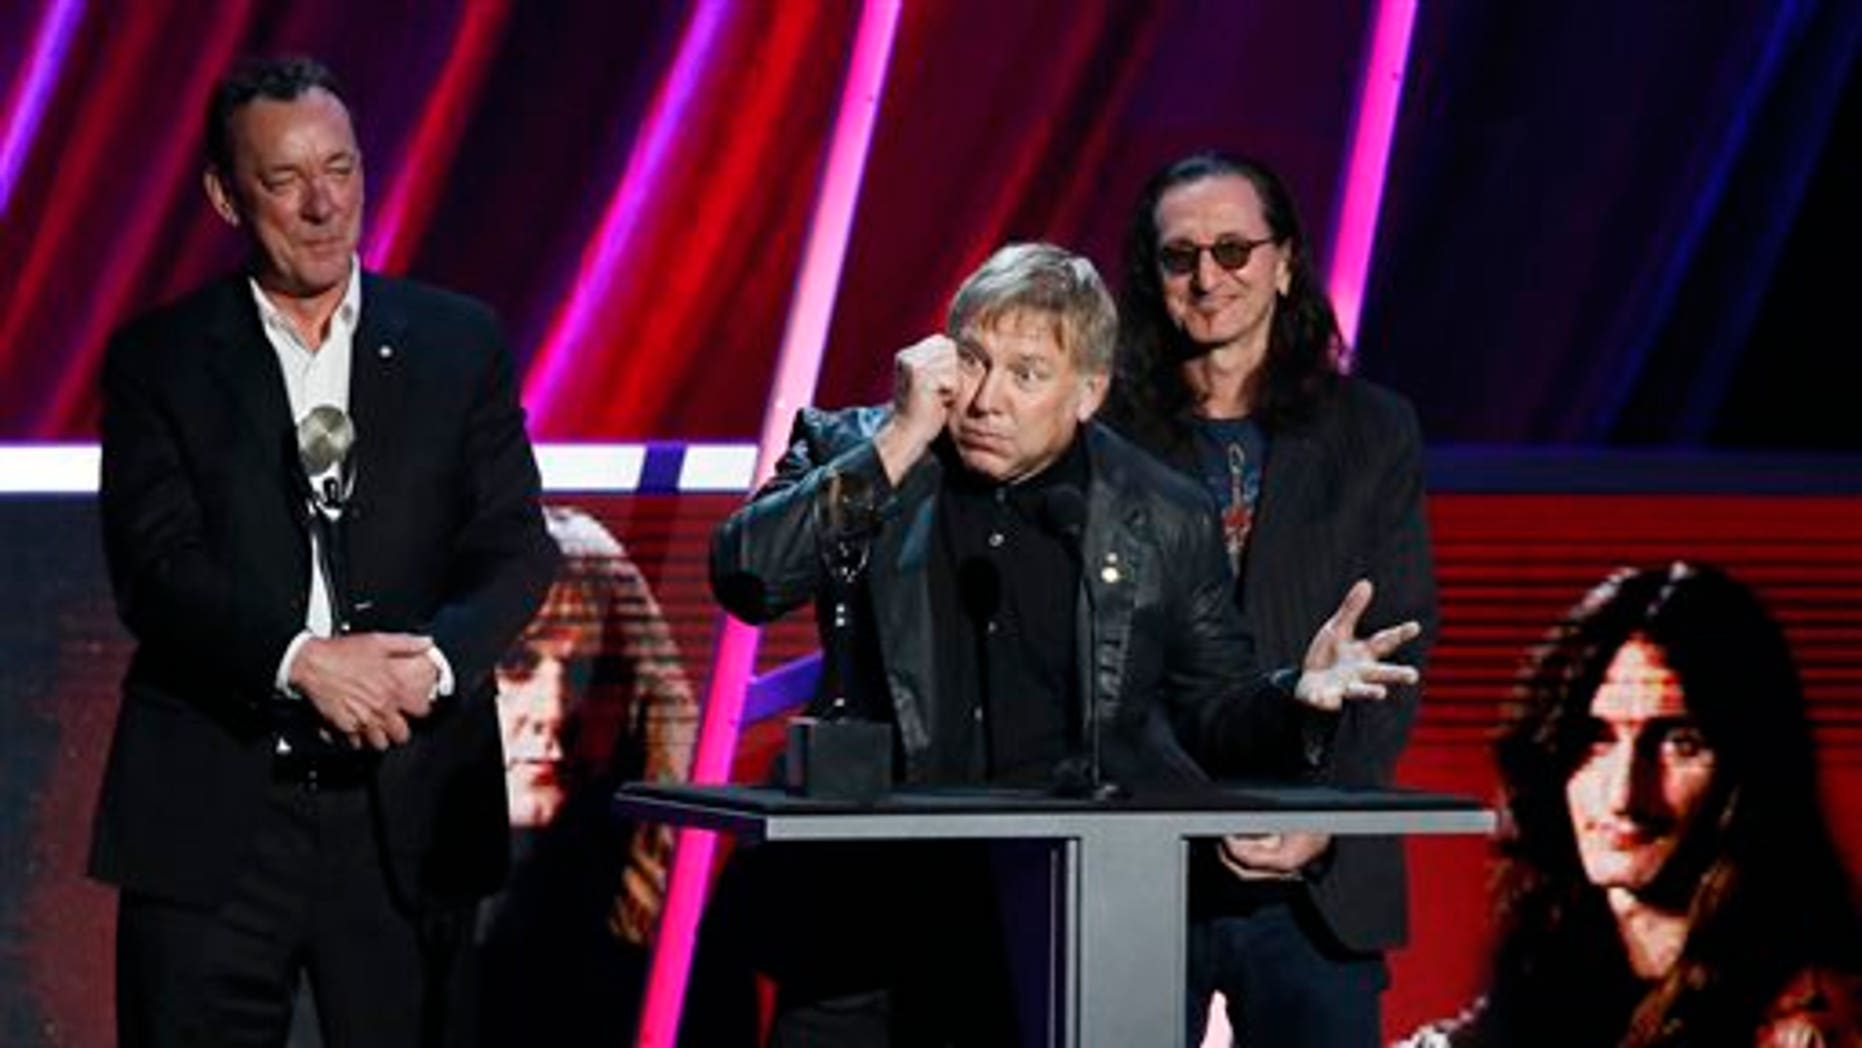 Alex Lifeson, center, Neil Peart, left, and Geddy Lee, right, of Rush accept their band's induction into the Rock and Roll Hall of Fame during the Rock and Roll Hall of Fame Induction Ceremony at the Nokia Theatre on Thursday, April 18, 2013 in Los Angeles.